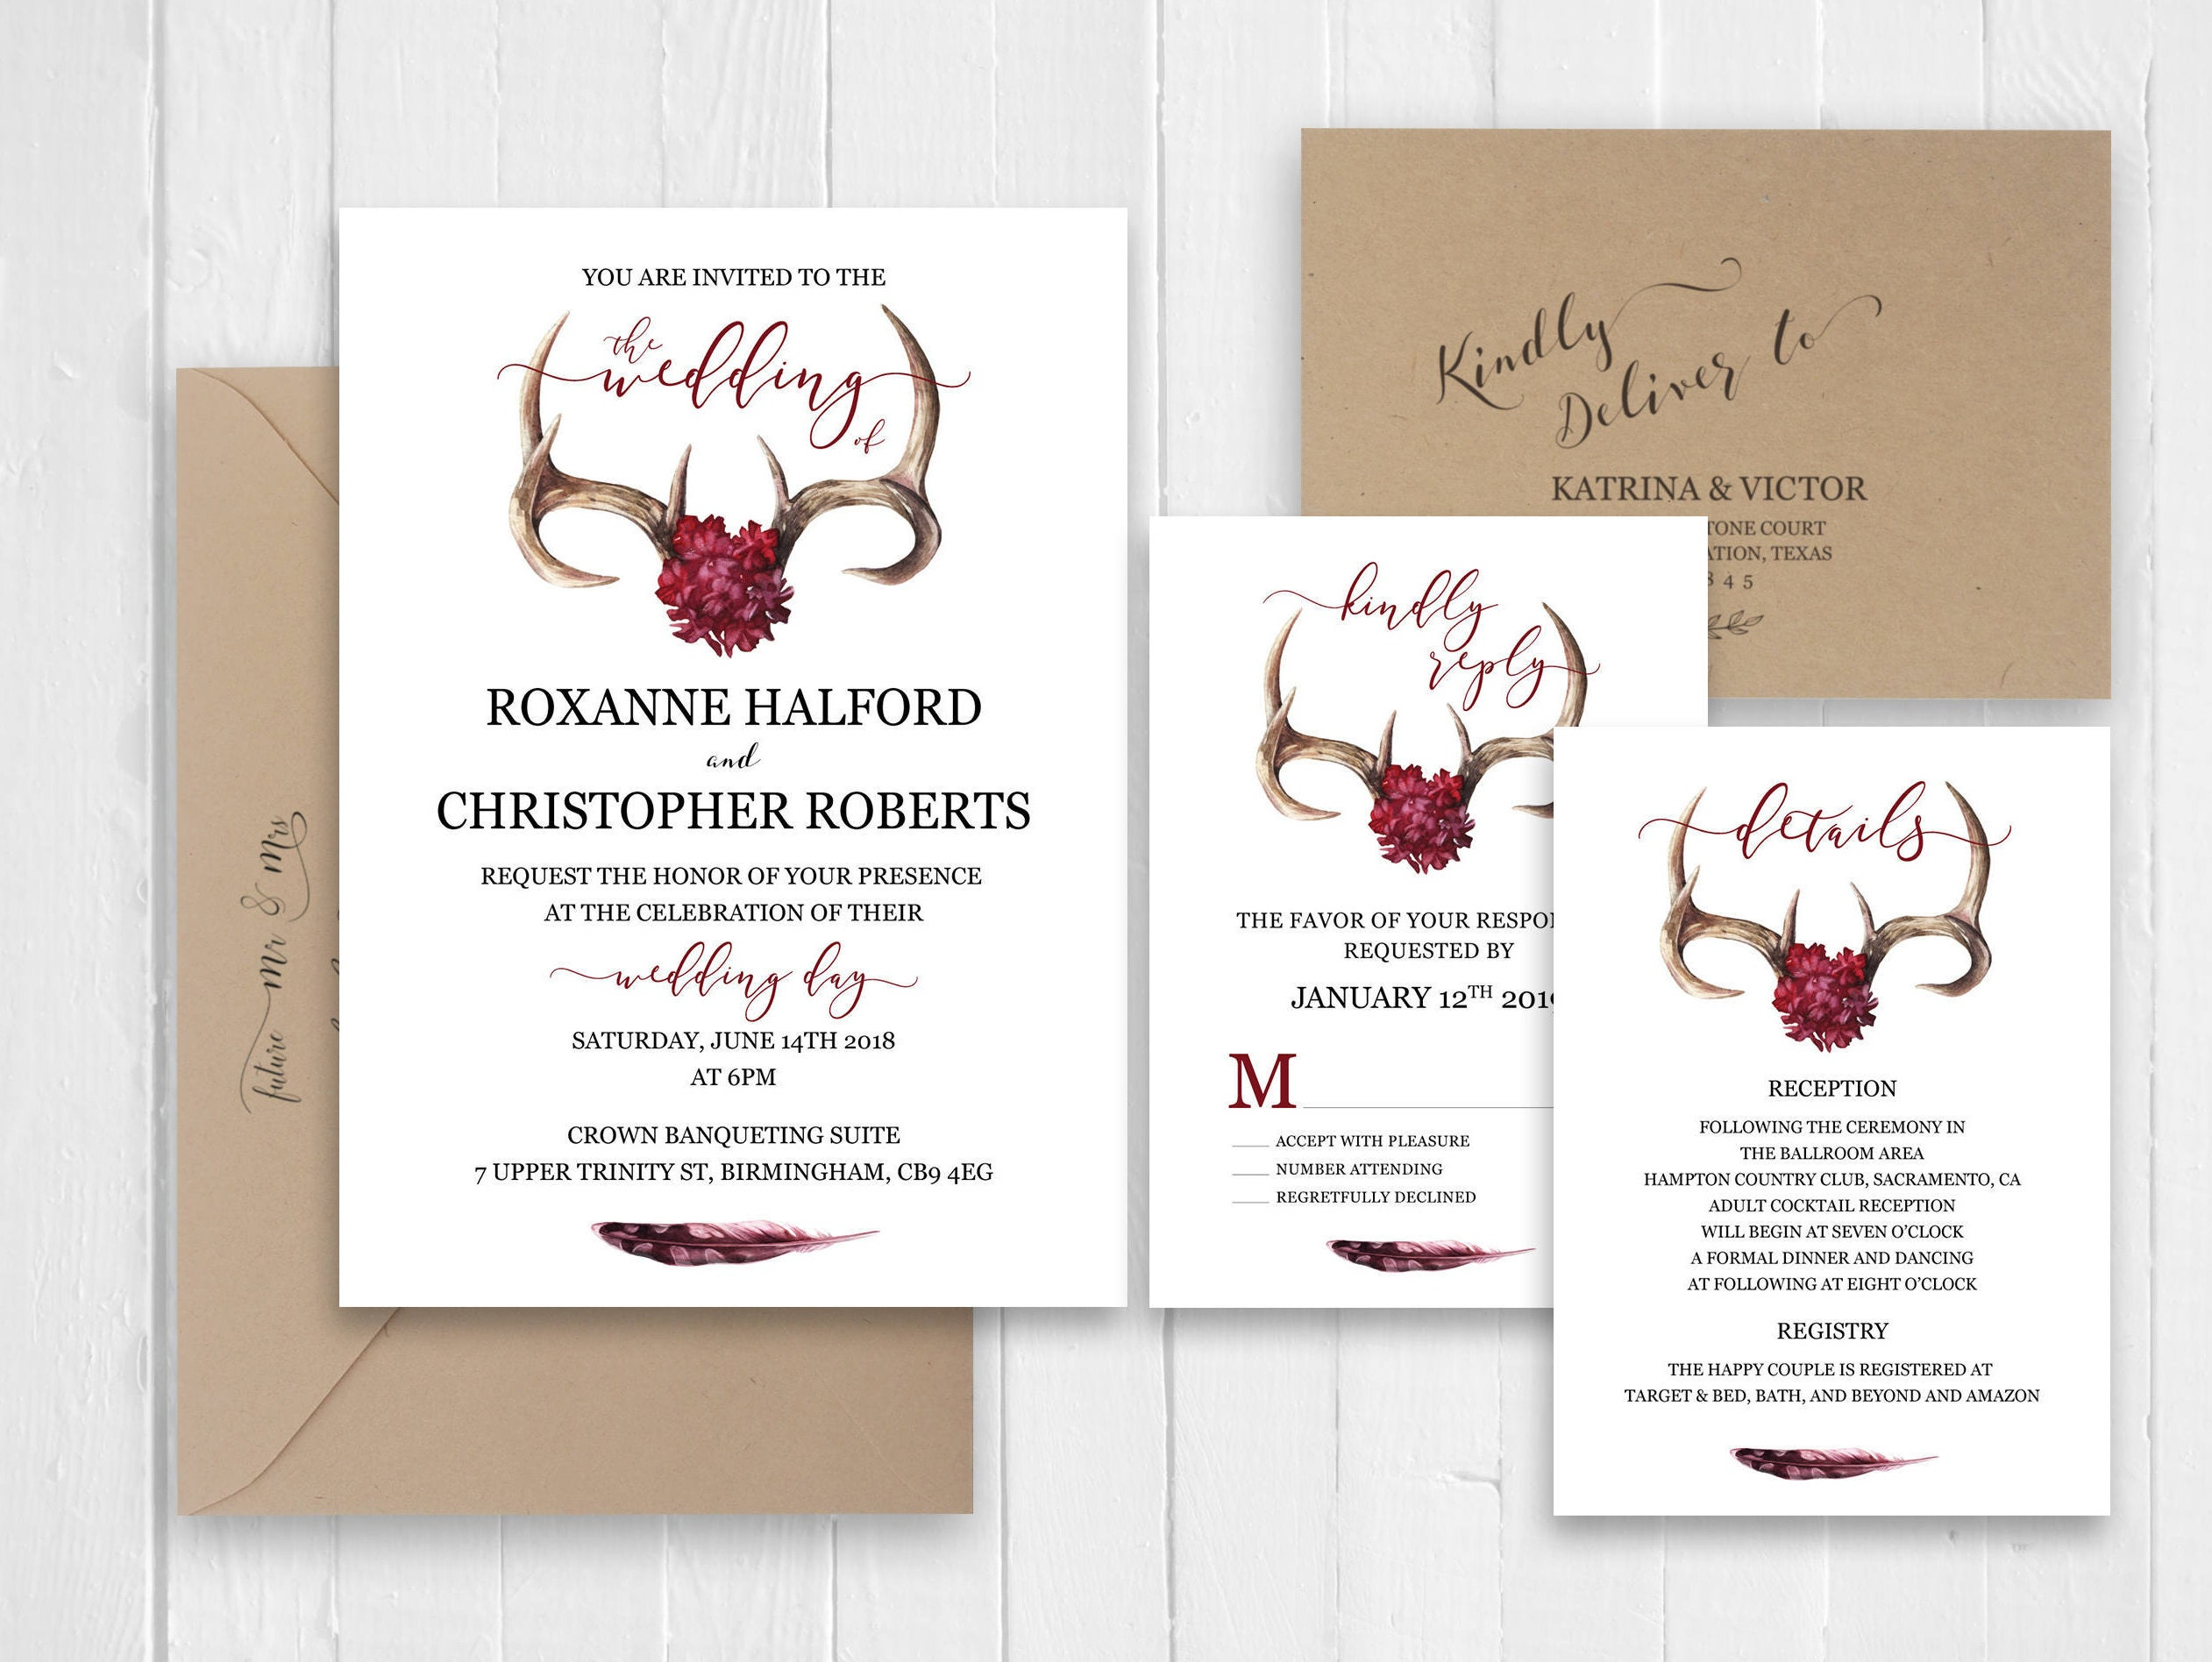 Burgundy Wedding Invitation Deer Antlers Invitations RSVP Details ...